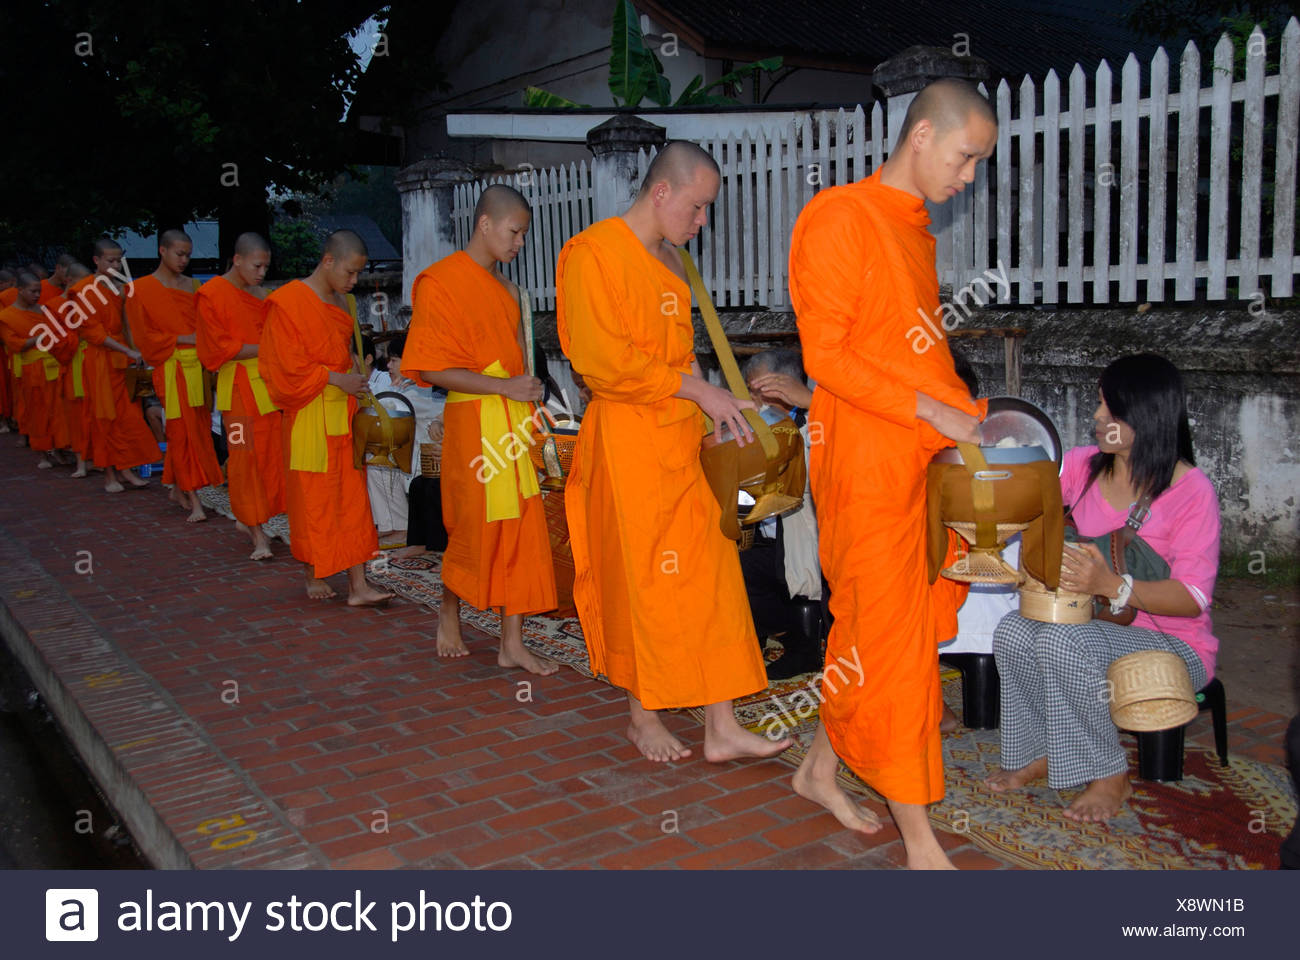 Buddhist monks with begging bowls receiving alms in the morning, Luang Prabang, Laos, Southeast Asia - Stock Image